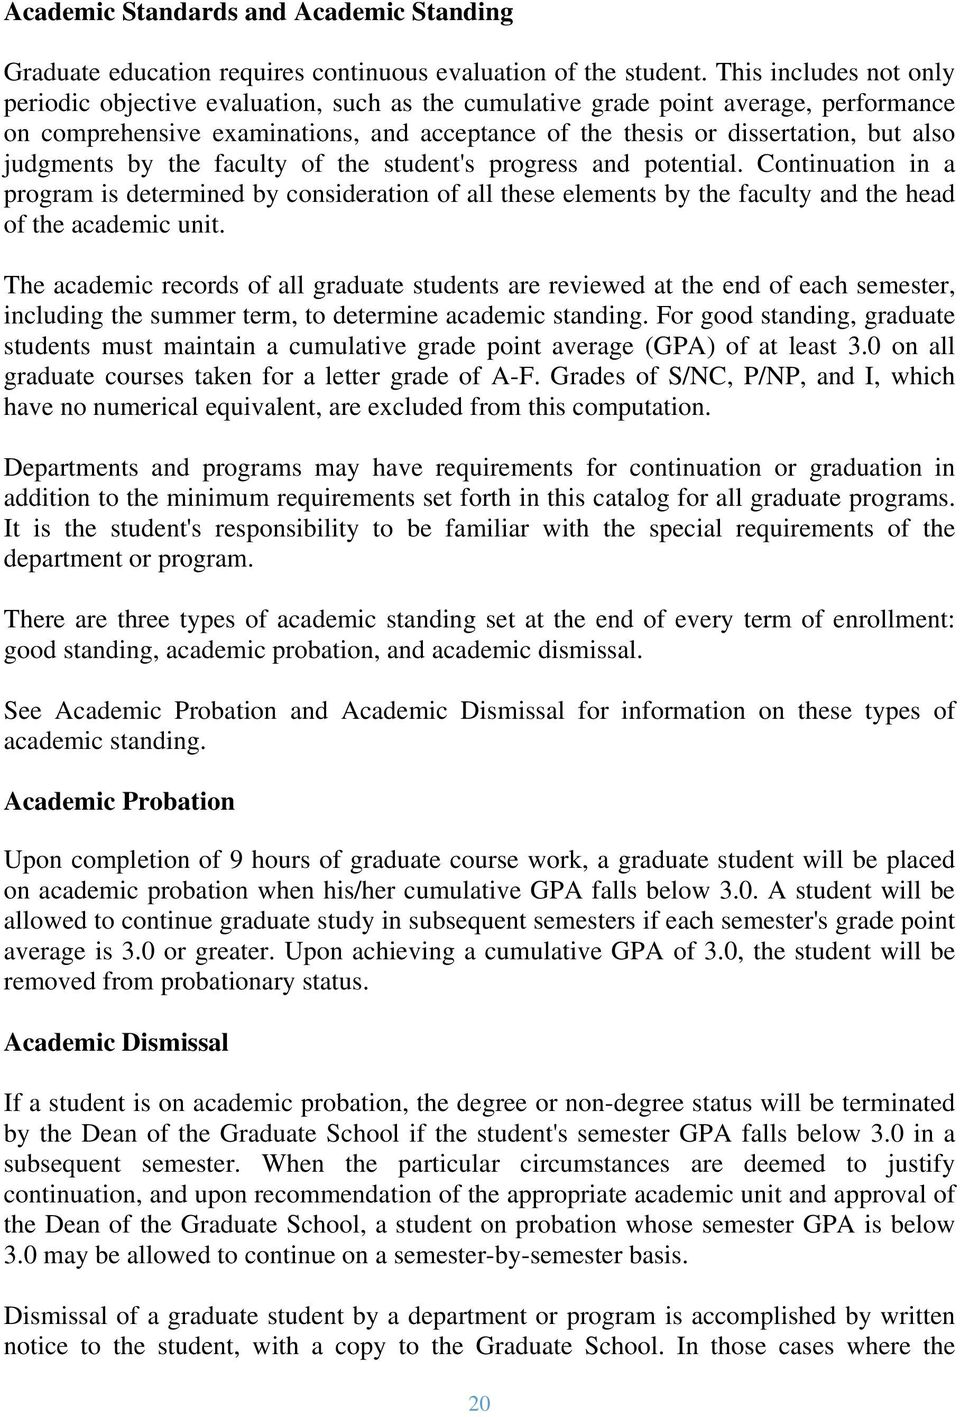 judgments by the faculty of the student's progress and potential. Continuation in a program is determined by consideration of all these elements by the faculty and the head of the academic unit.